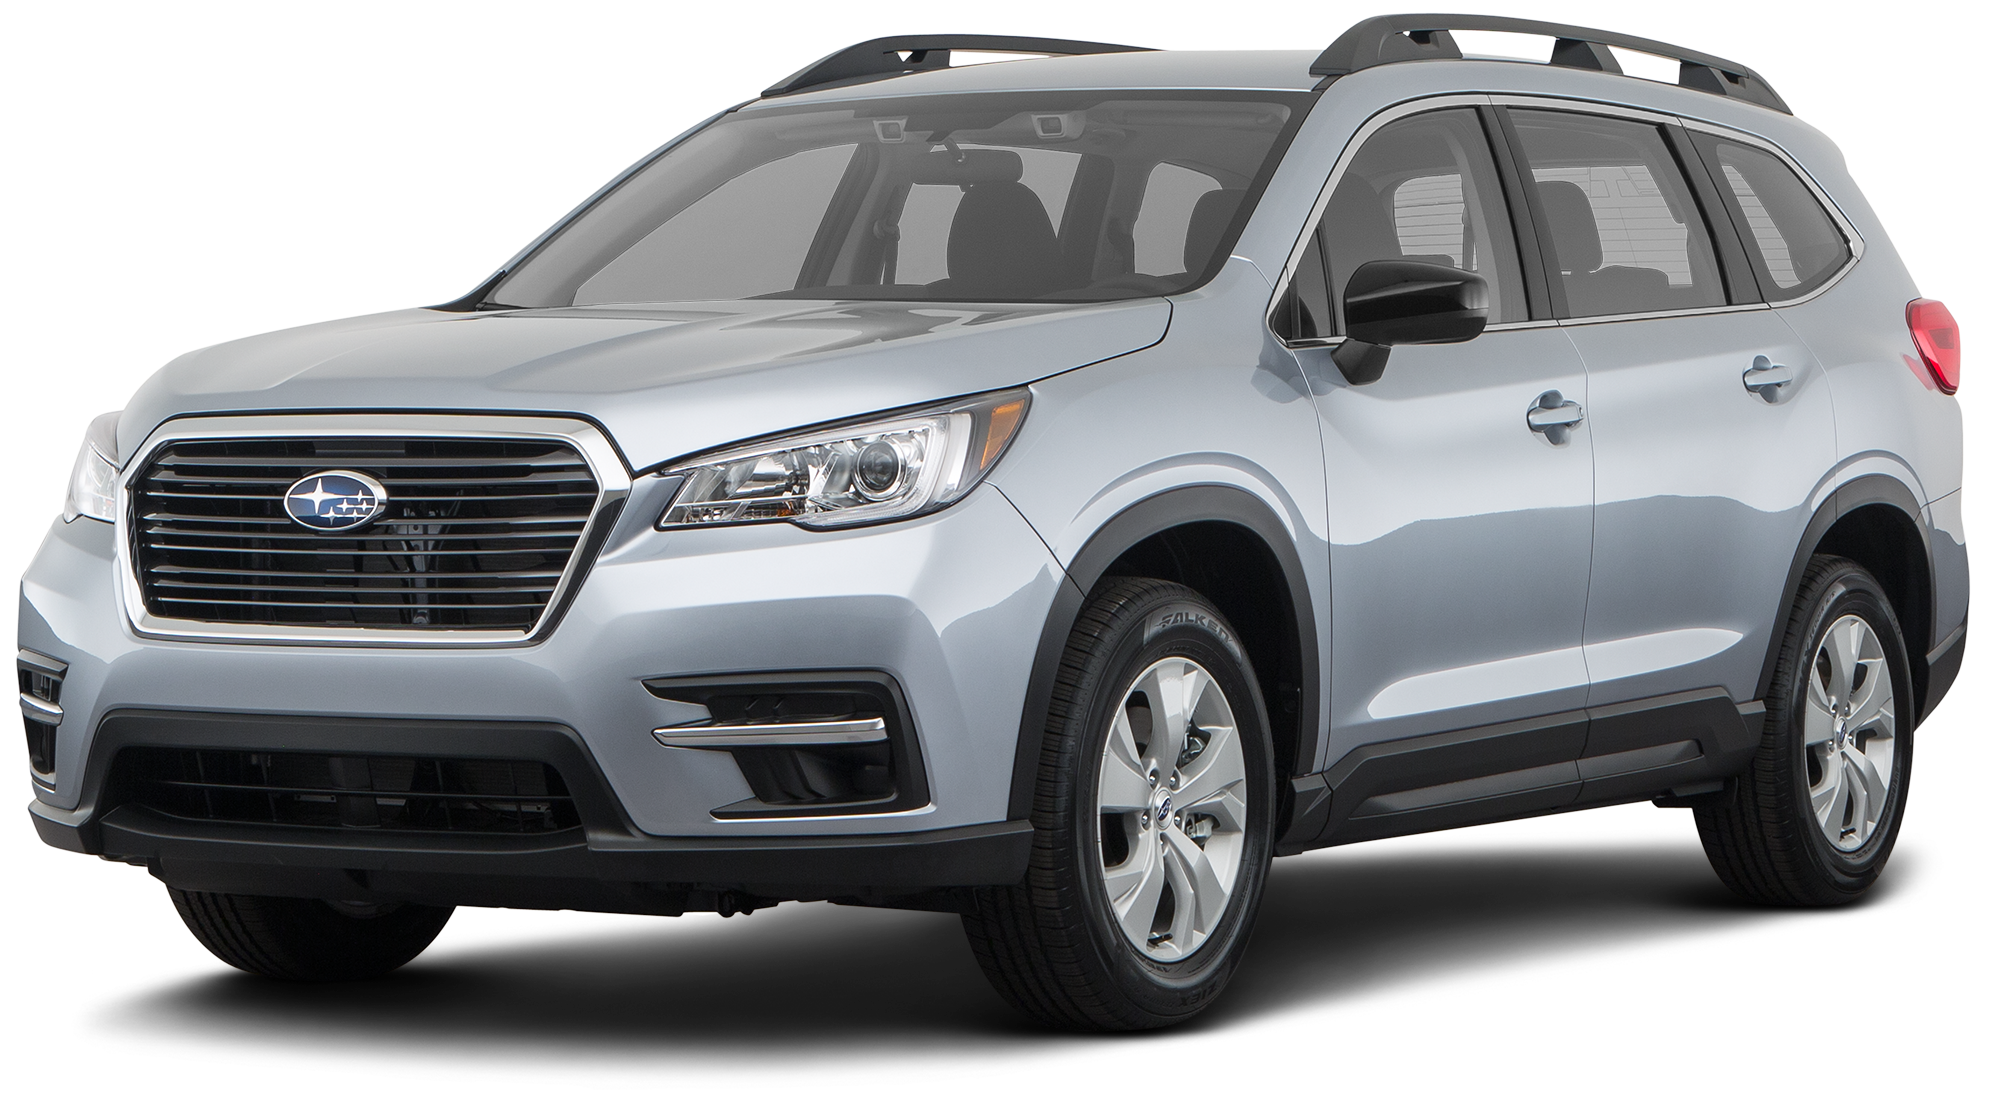 Subaru Lease Offers Deals Houston Legacy Outback Forester More Fuel Filter Location Offer Only Valid 11 01 2018 Through 30